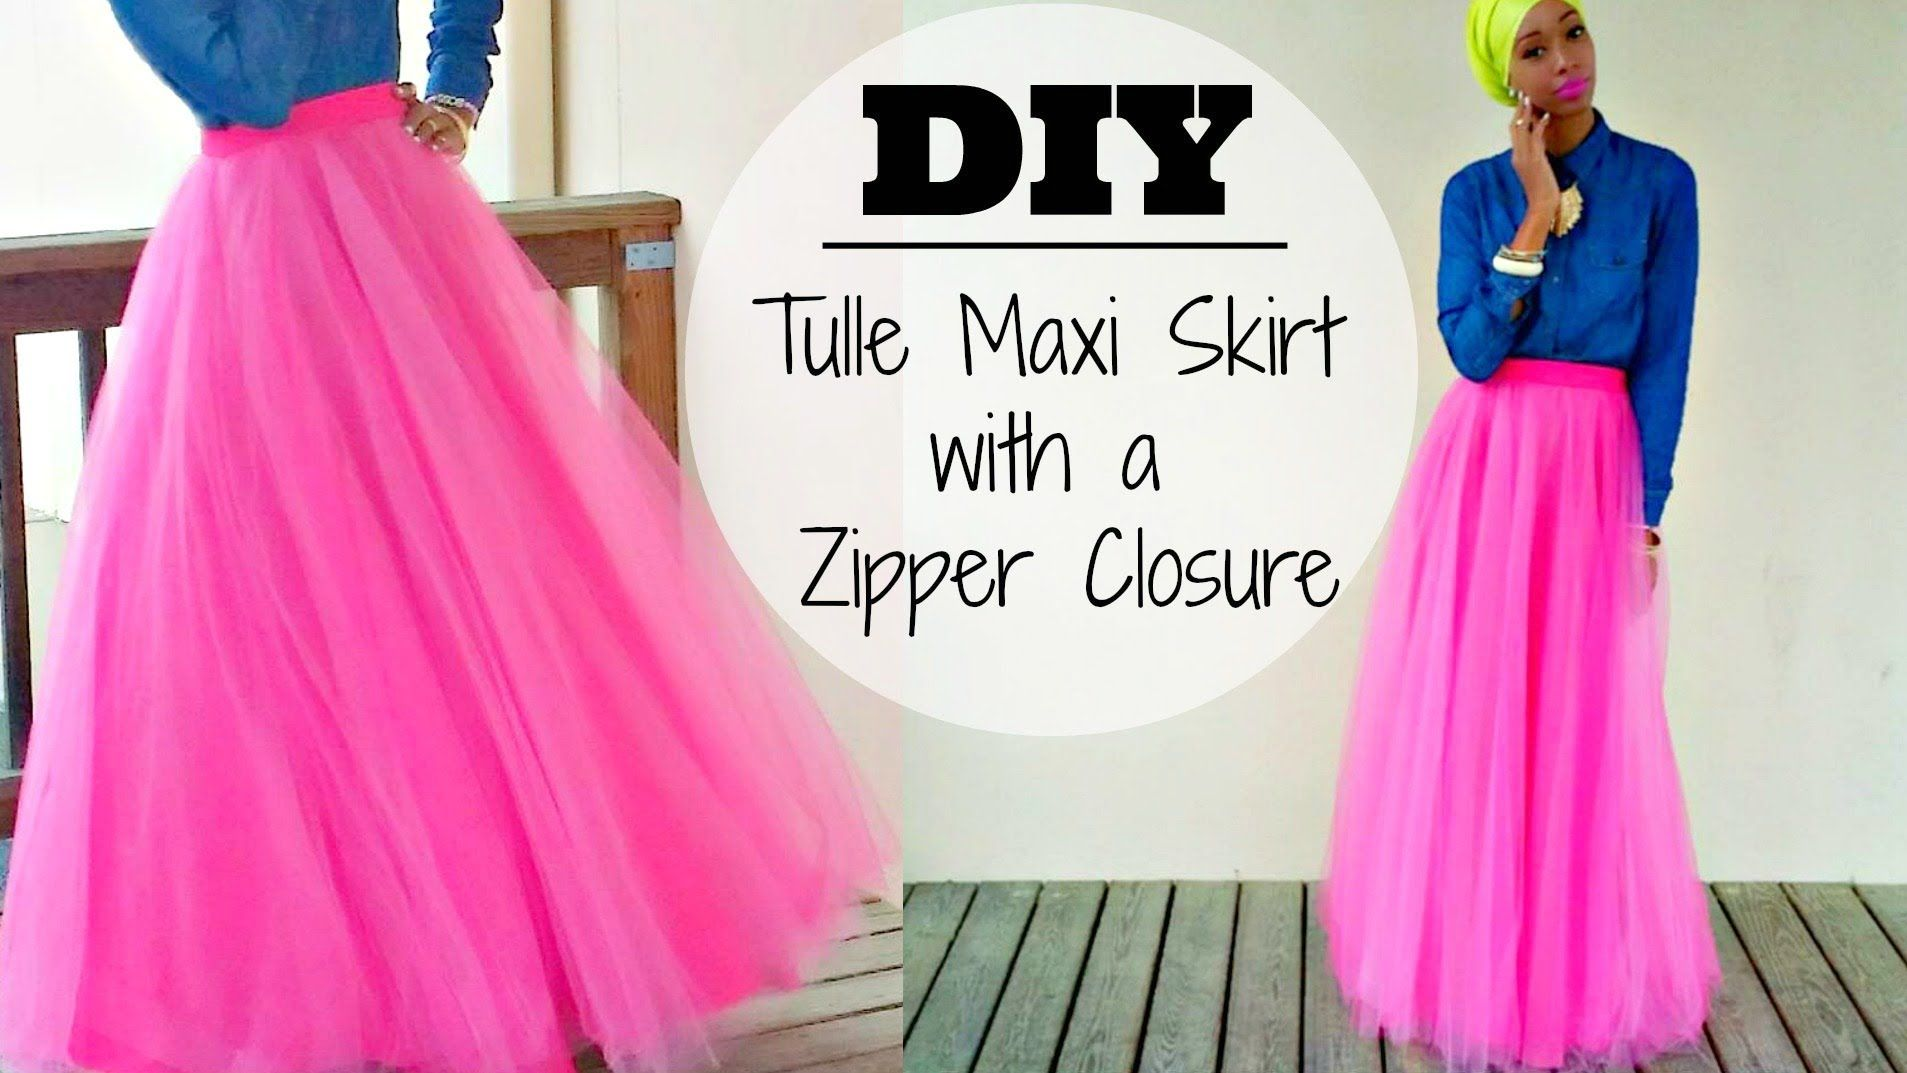 DIY | Tulle Maxi Skirt | With a Zipper AWESOME IDEA FOR DIY EID ...